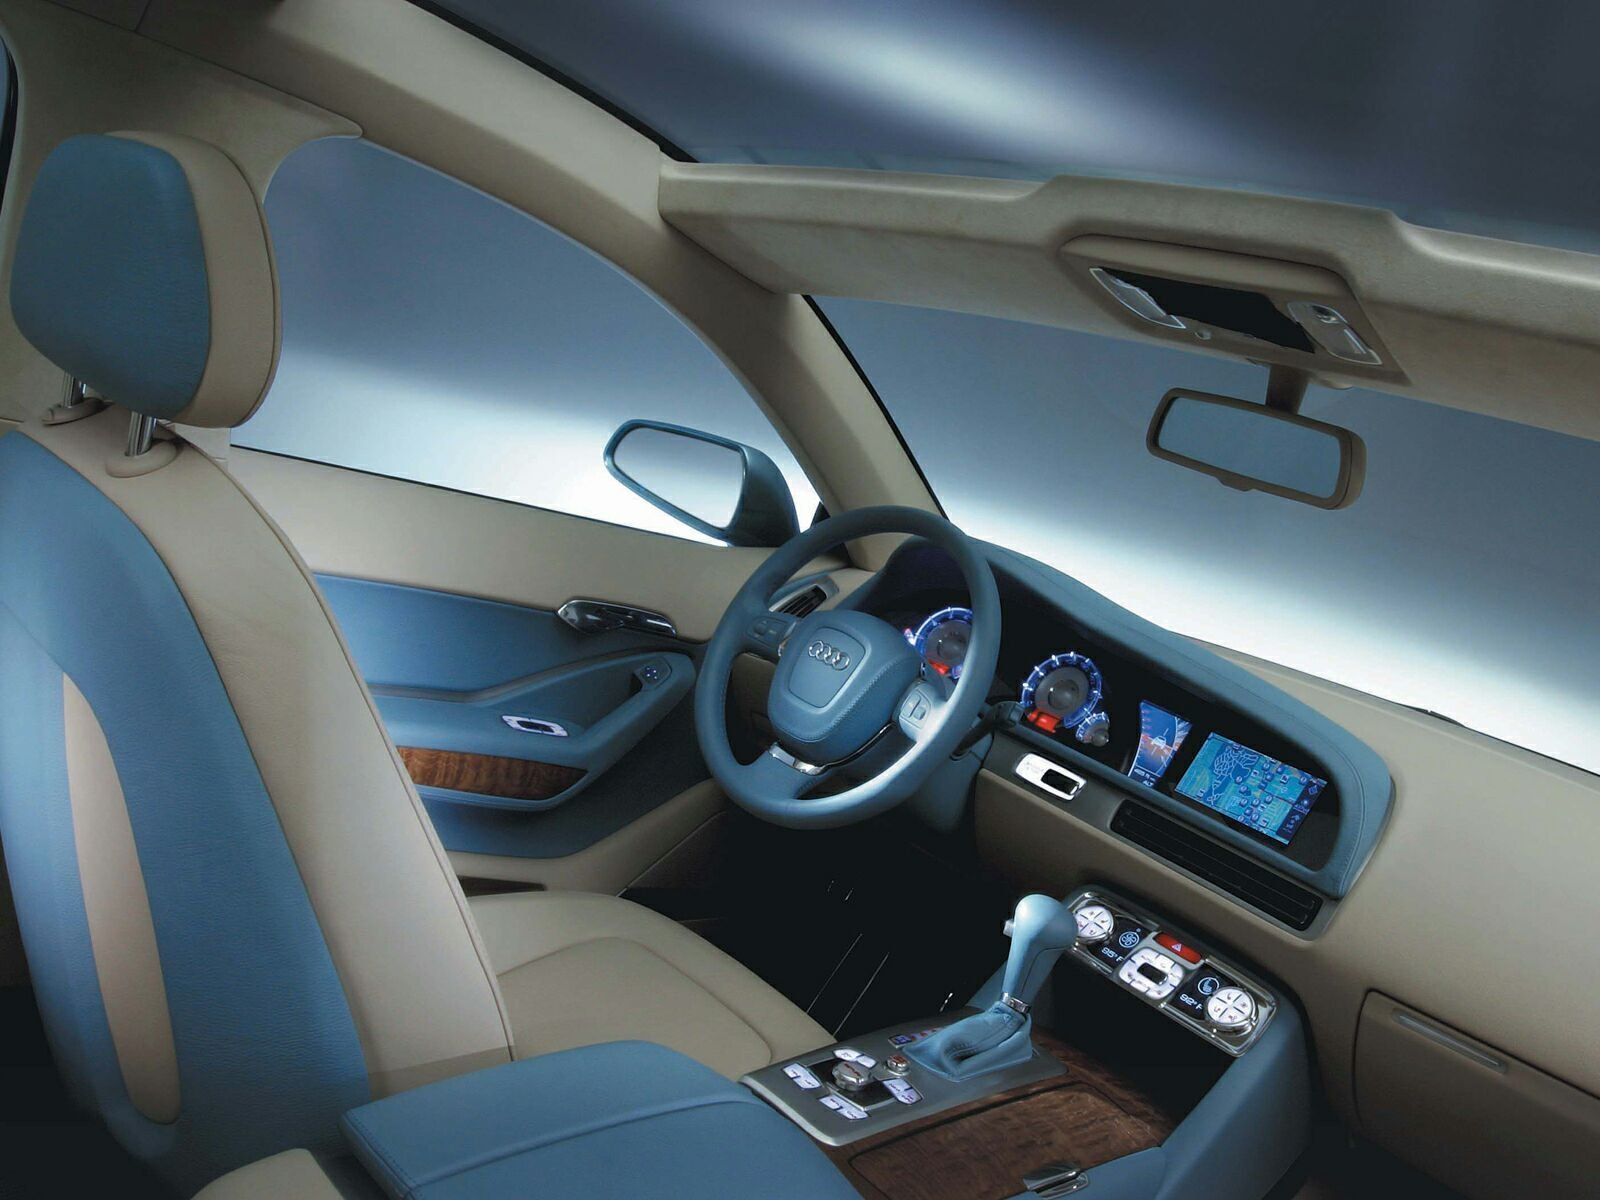 Latest Audi Inside Wallpapers Audi Inside Stock Photos Free Download